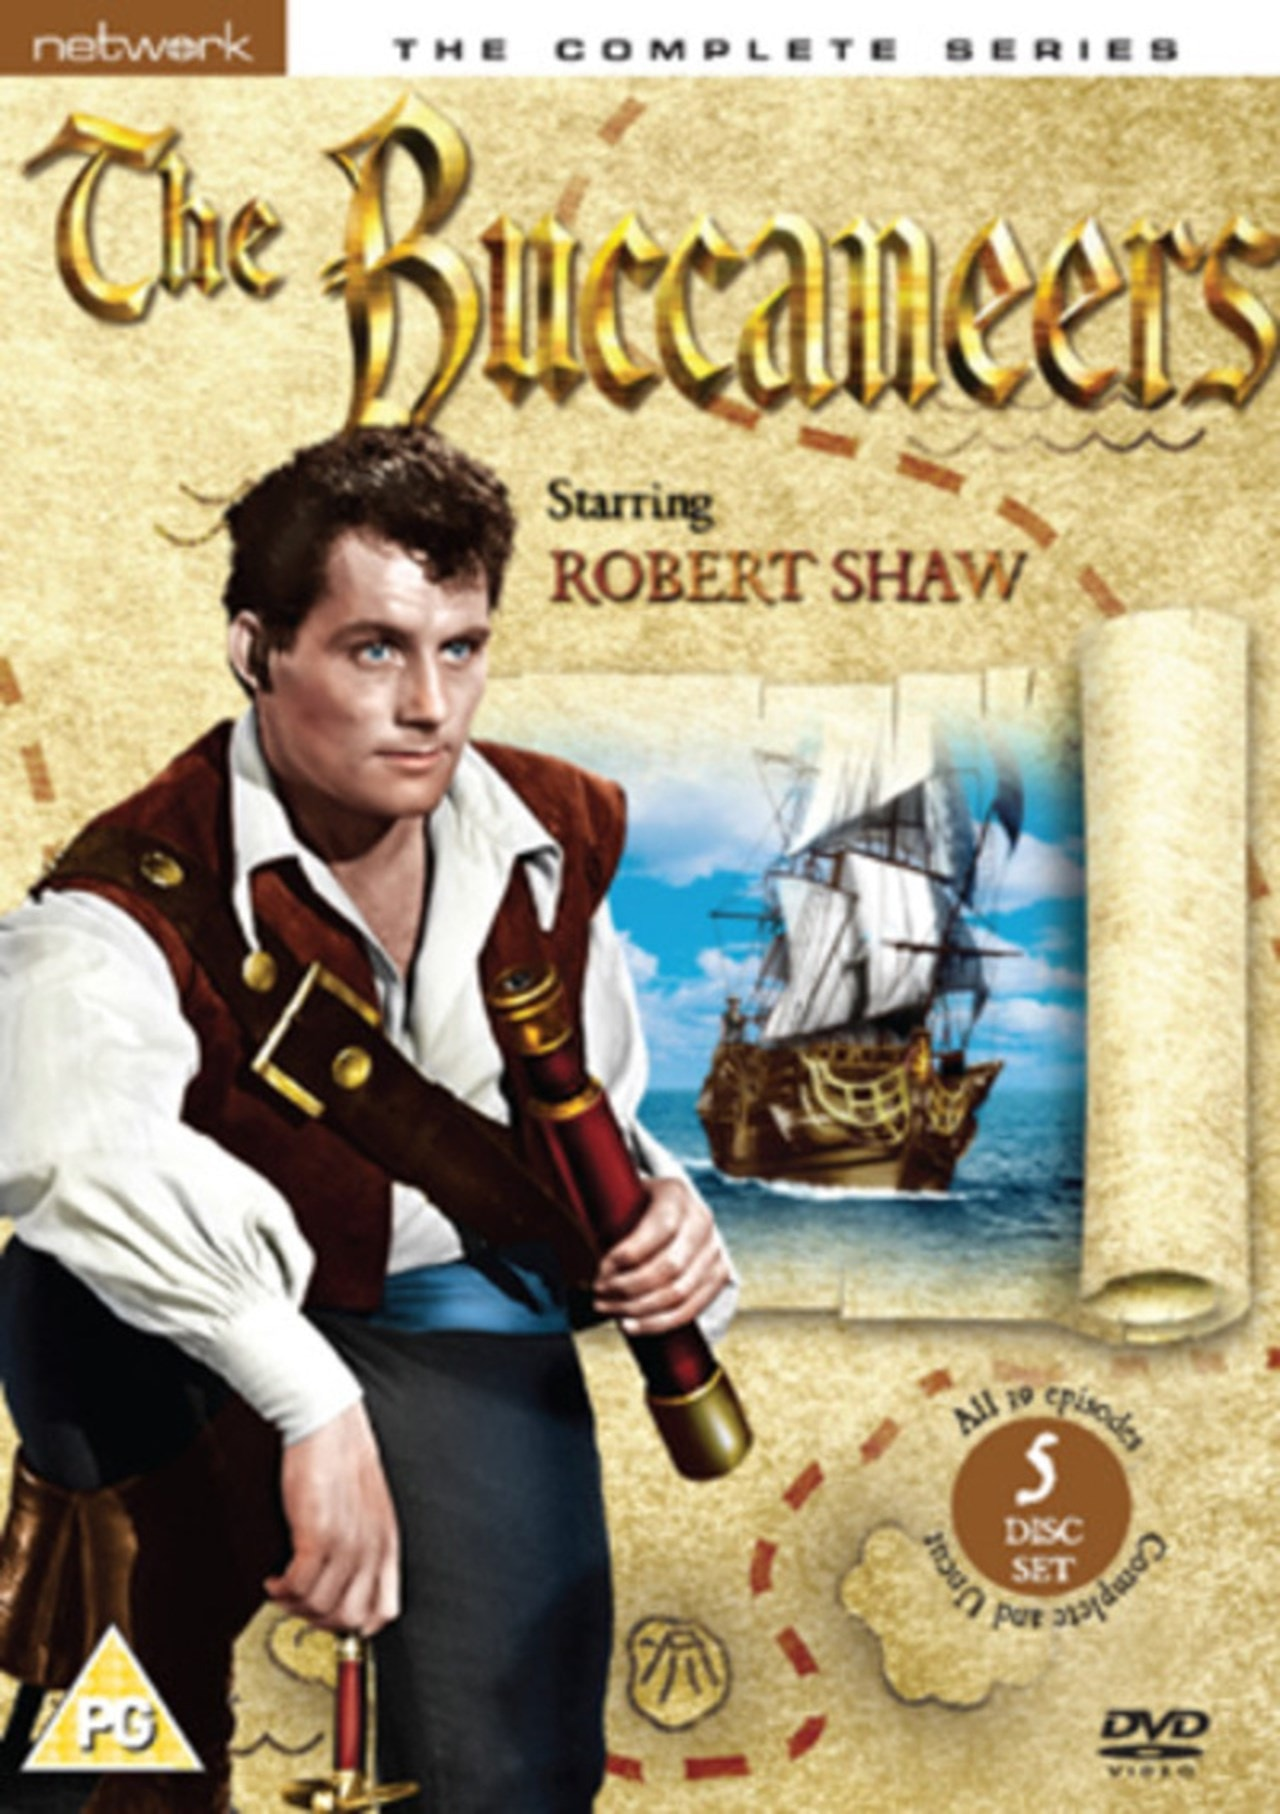 The Buccaneers: The Complete Series - 1